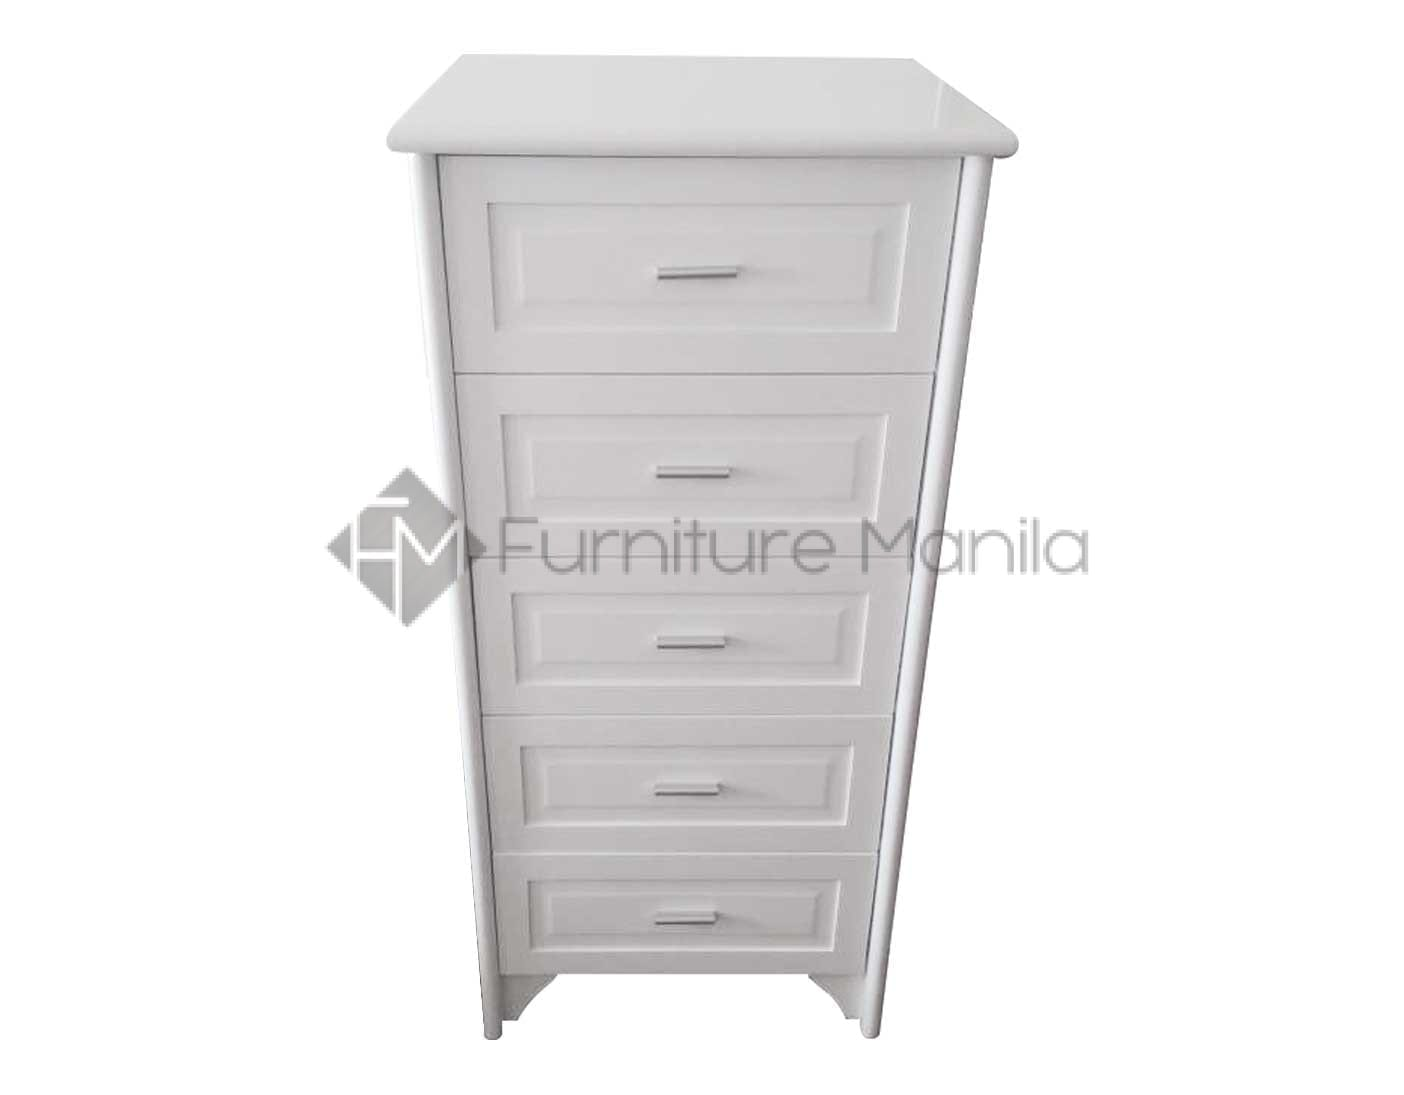 Br3252 Chest Of Drawers Furniture Manila